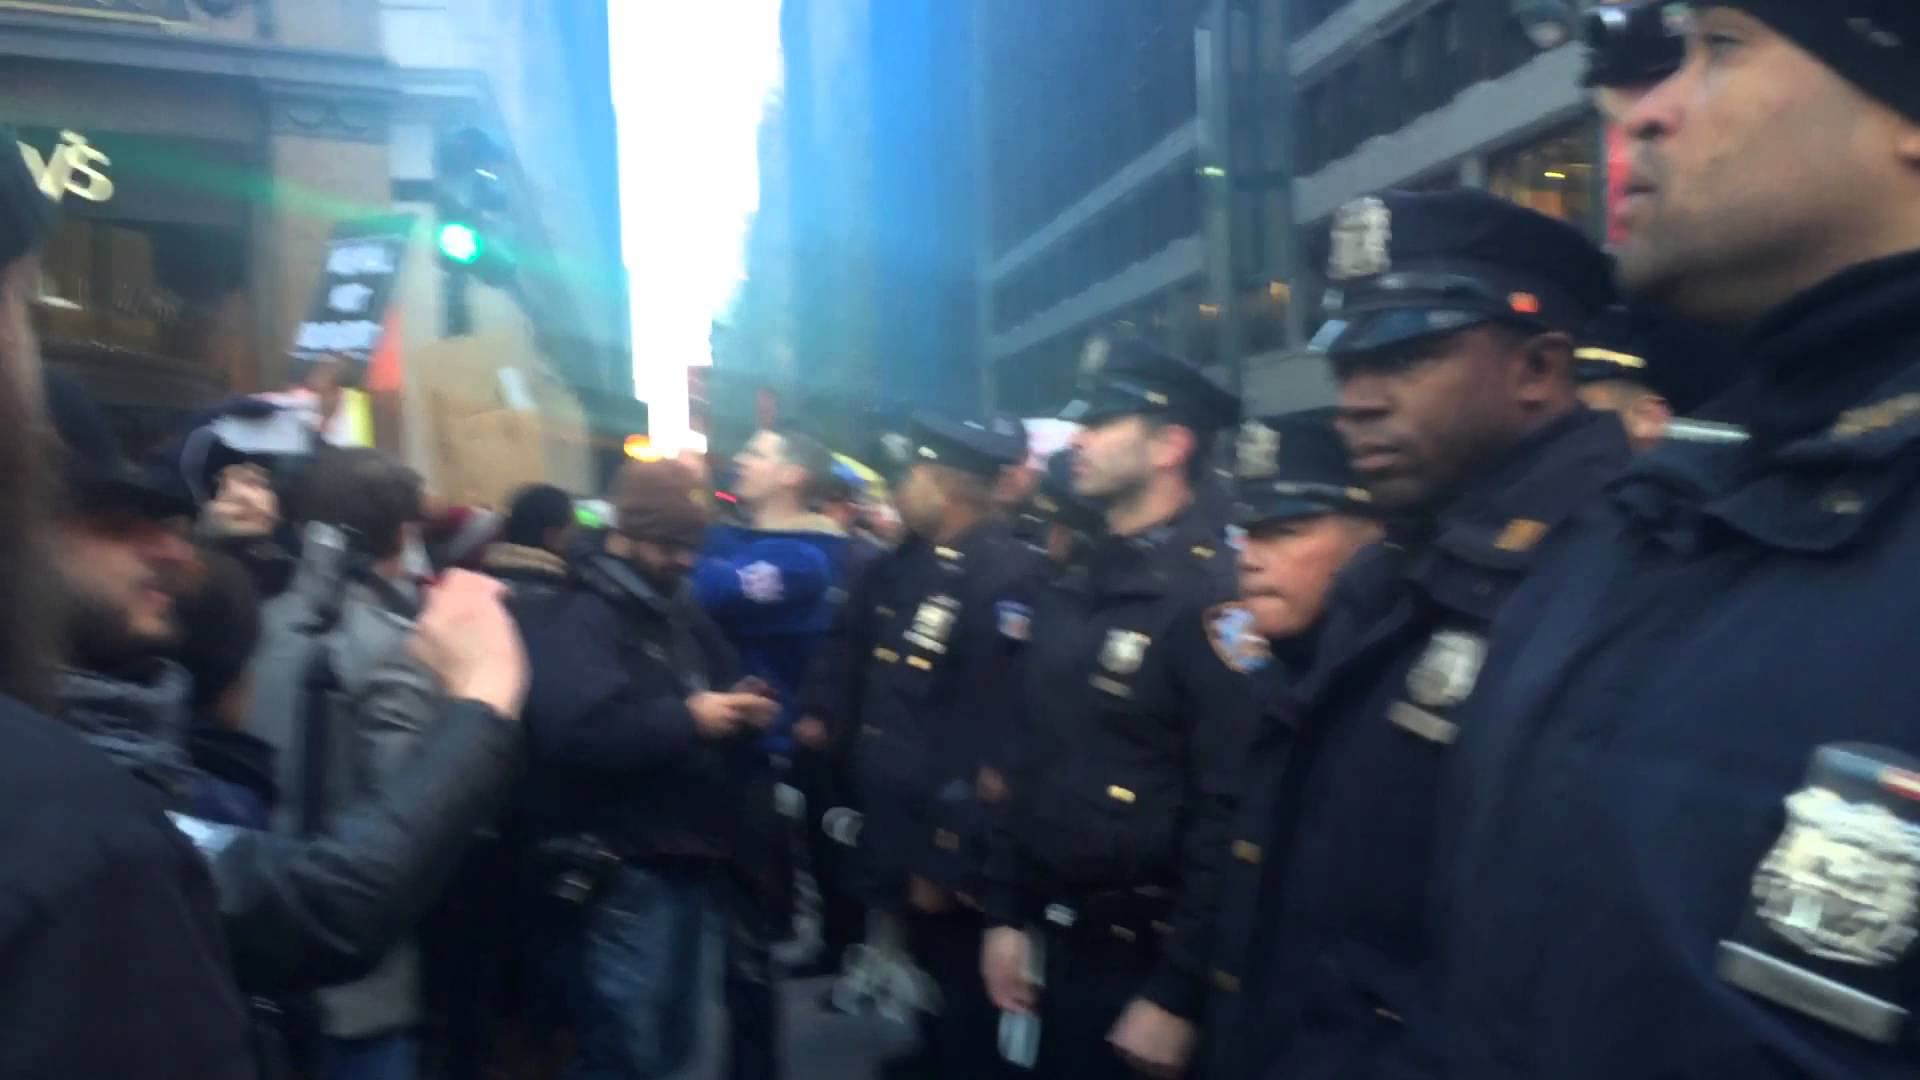 Blackout Black Friday Arrests and LRAD by the NYPD